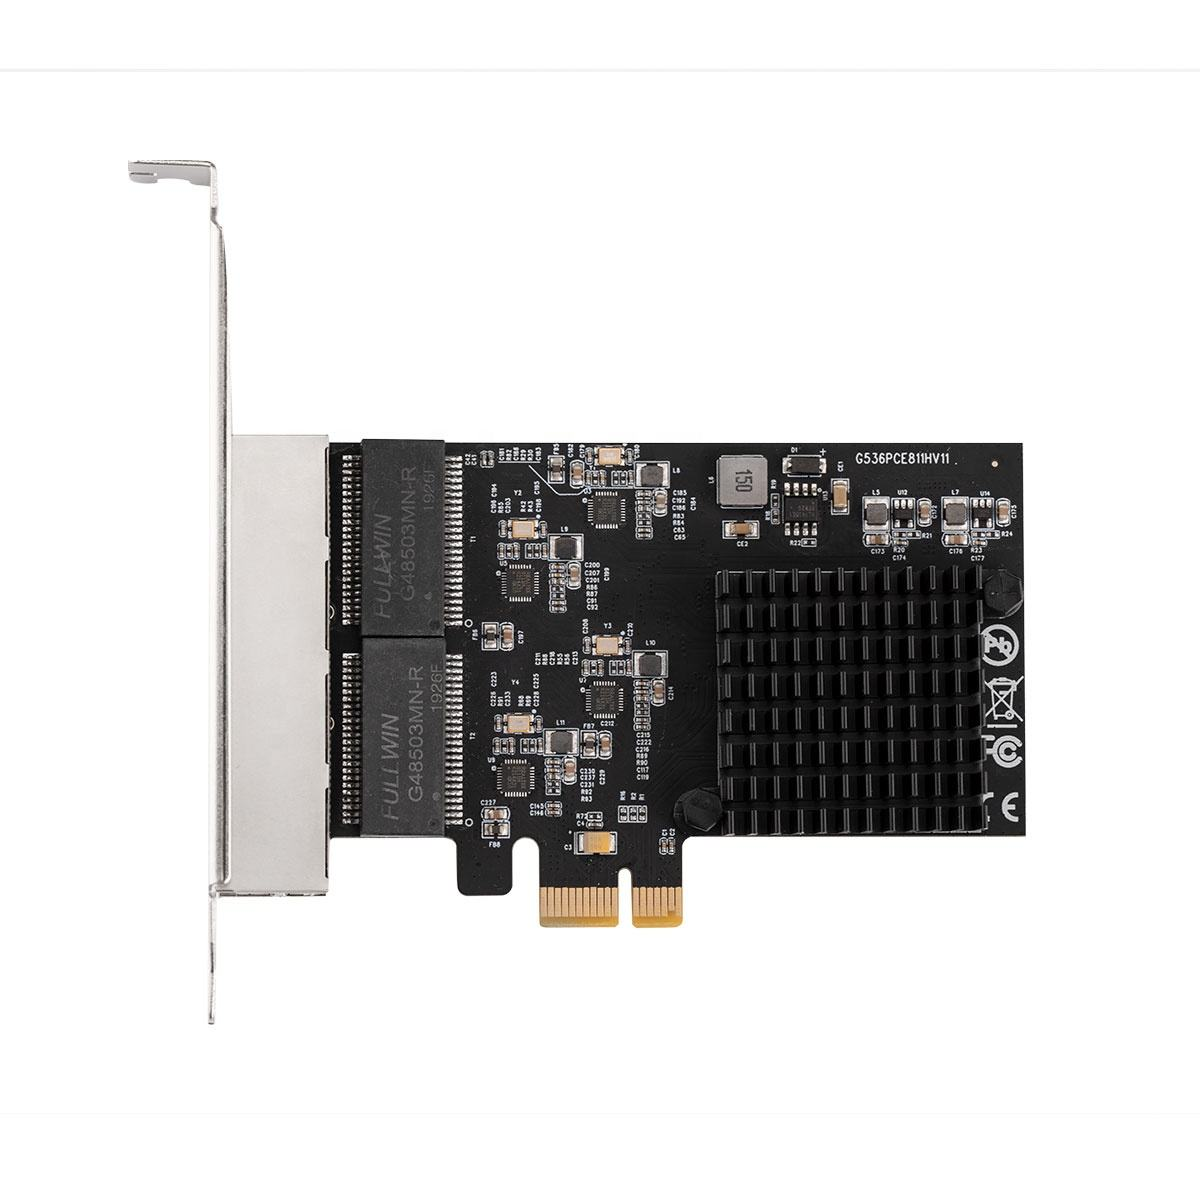 Realtek pci express ממשק 10/100/1000 mbps gigabit ethernet חוטית lan כרטיס